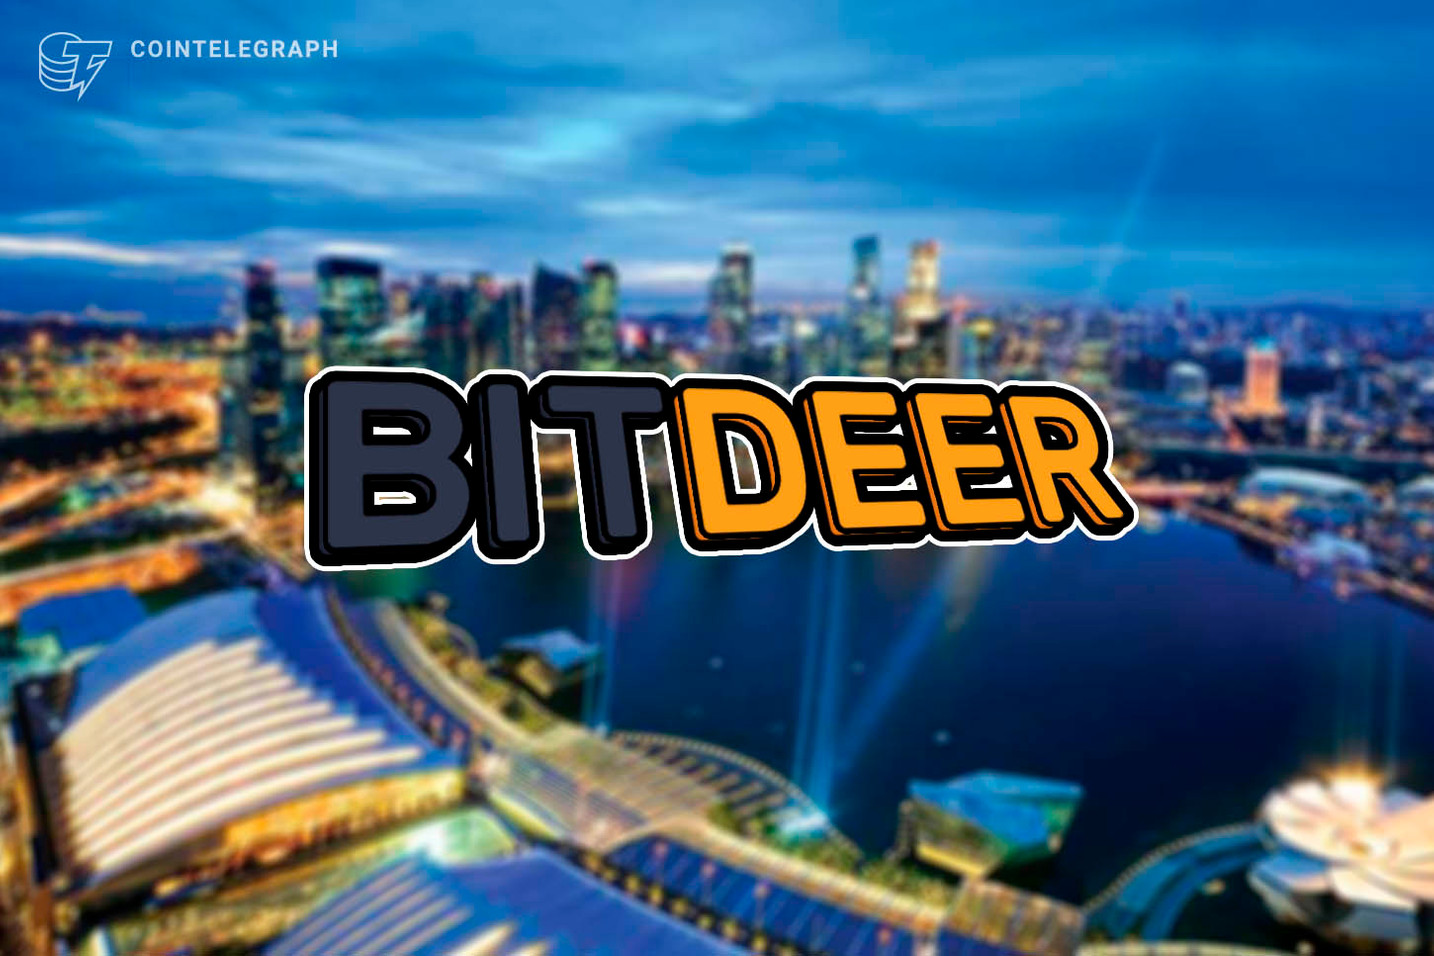 """BitDeer.com Pioneers The New """"Extreme Efficient"""" S19 Mining Plans"""